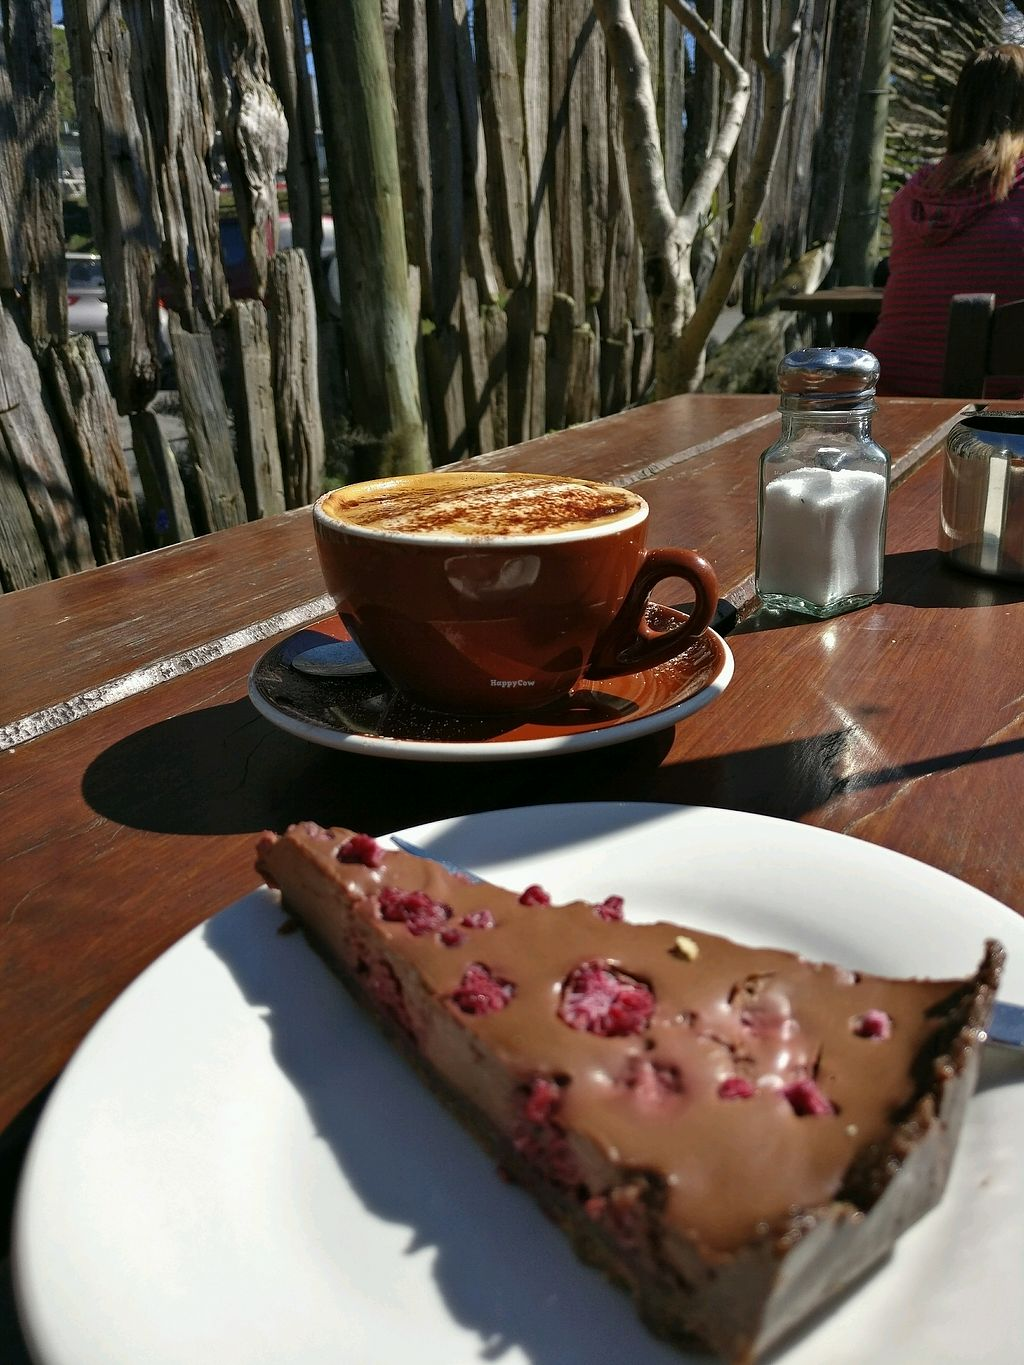 """Photo of Brown Sugar Cafe  by <a href=""""/members/profile/Aloo"""">Aloo</a> <br/>chocolate raspberry torte with soy cap <br/> September 14, 2017  - <a href='/contact/abuse/image/84363/304537'>Report</a>"""